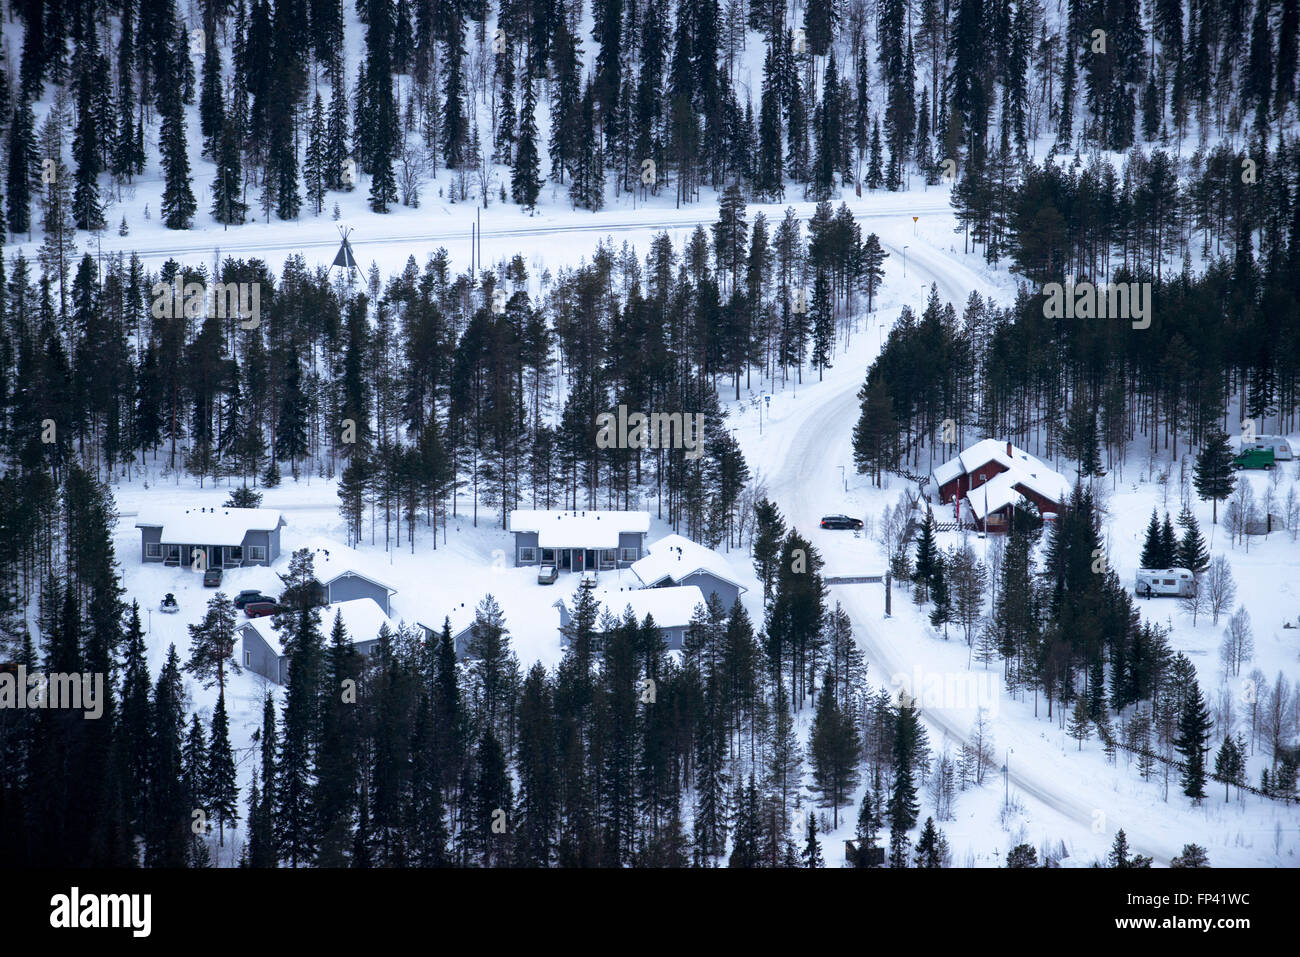 Hotels near the Salla ski resort. Deep in the wilderness of heavily snow laden coniferous trees and rugged fell - Stock Image